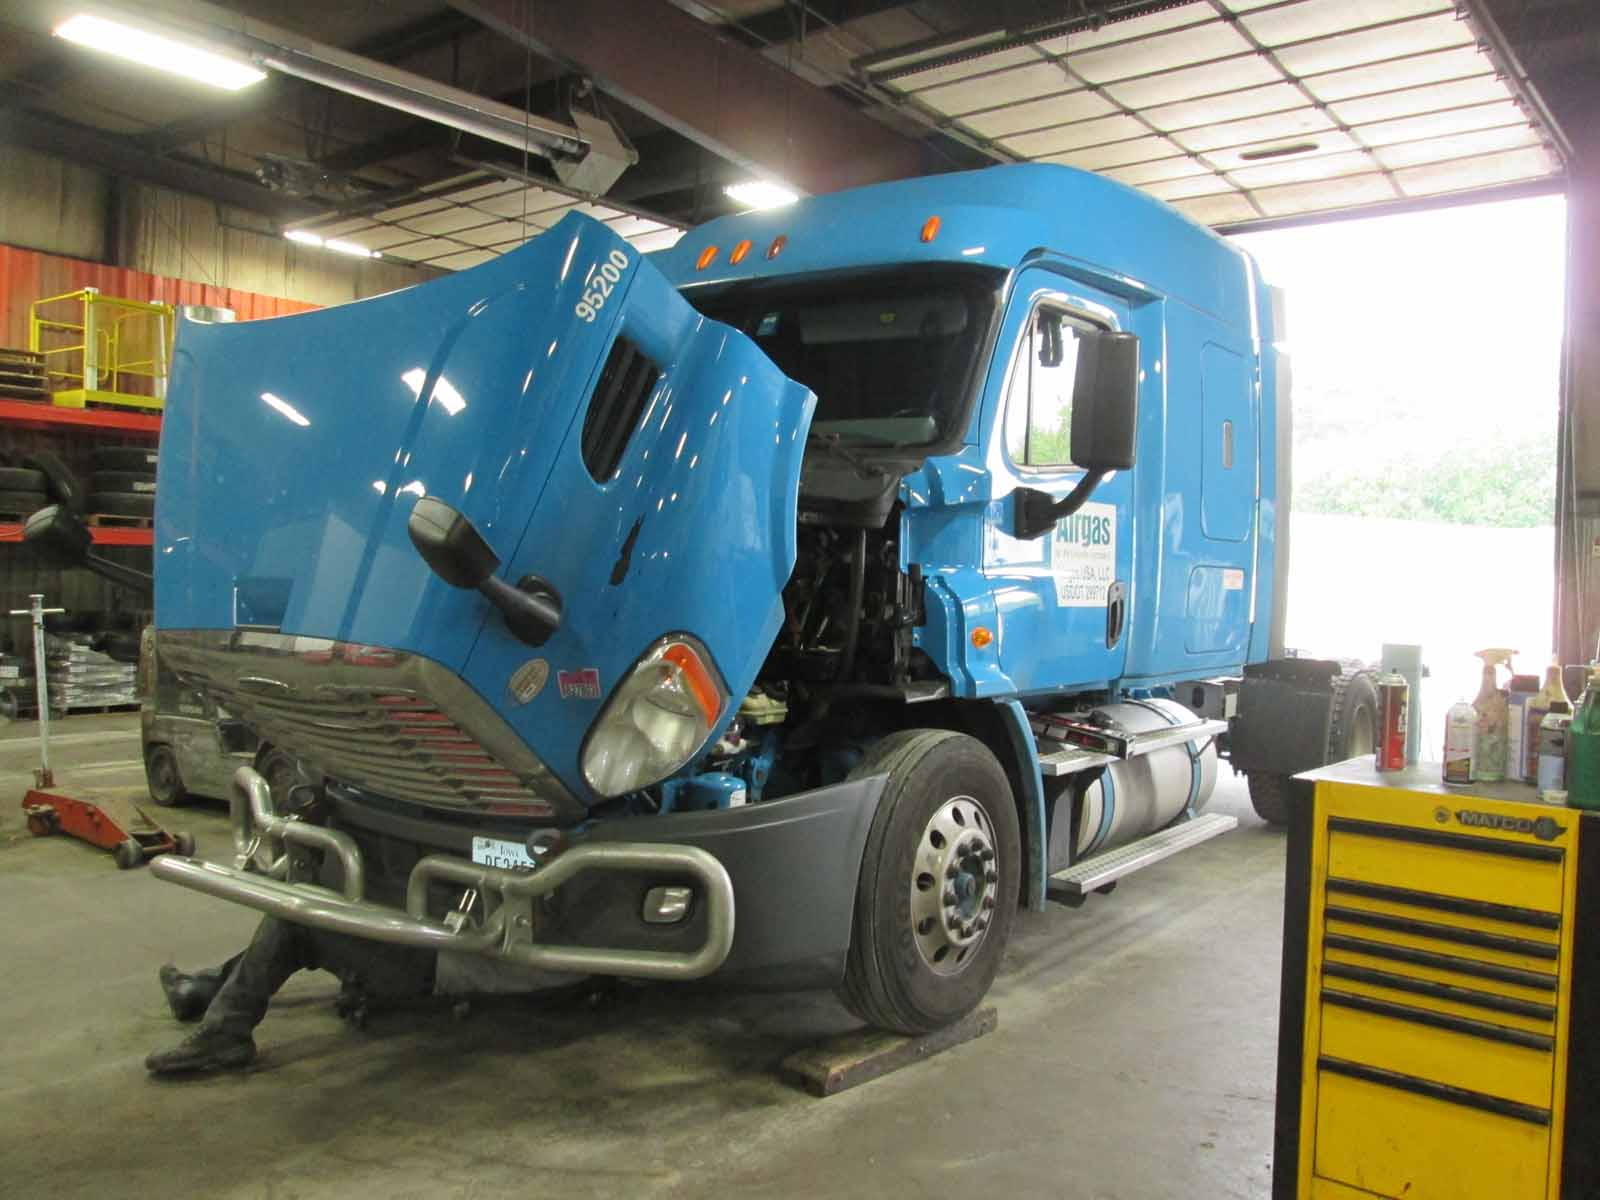 Commerical Truck Technician Shortage Leads to Increasing Shop Labor Rates